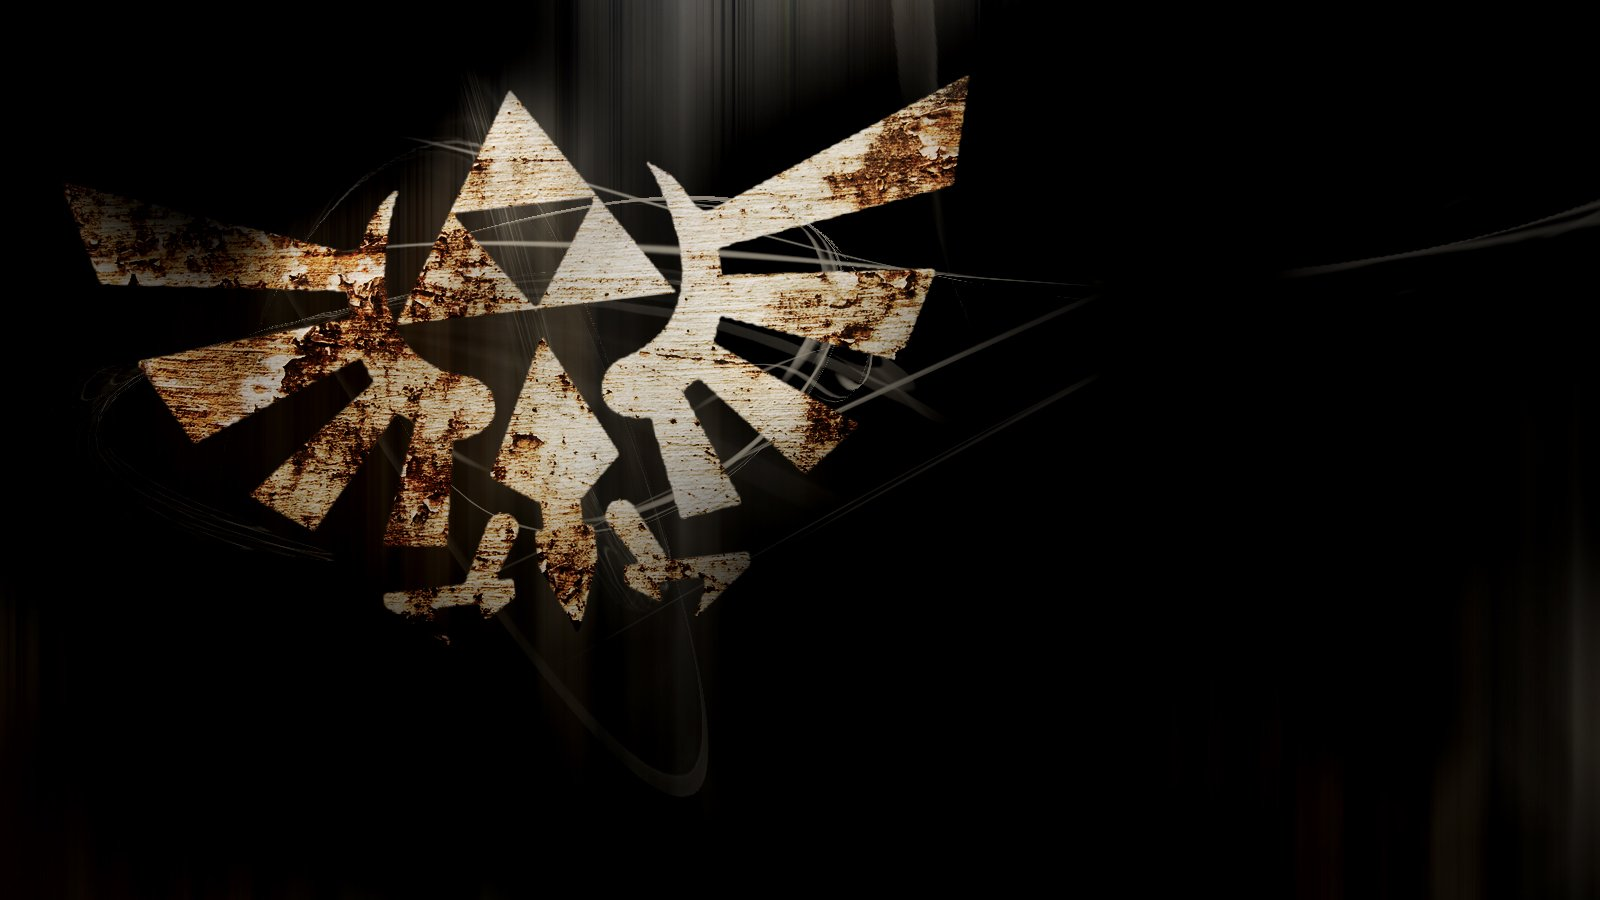 Cracked Winged Triforce Wallpaper 1600x900 249357